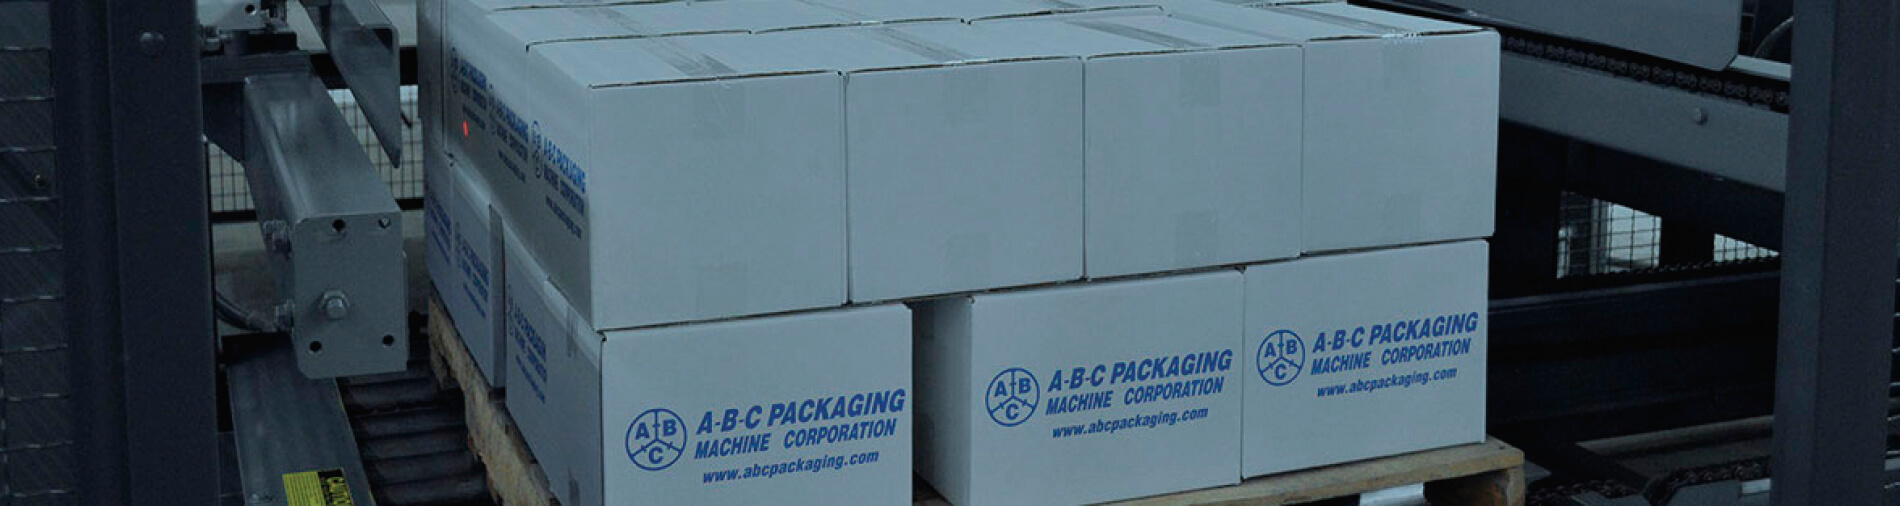 ABC_Packaging